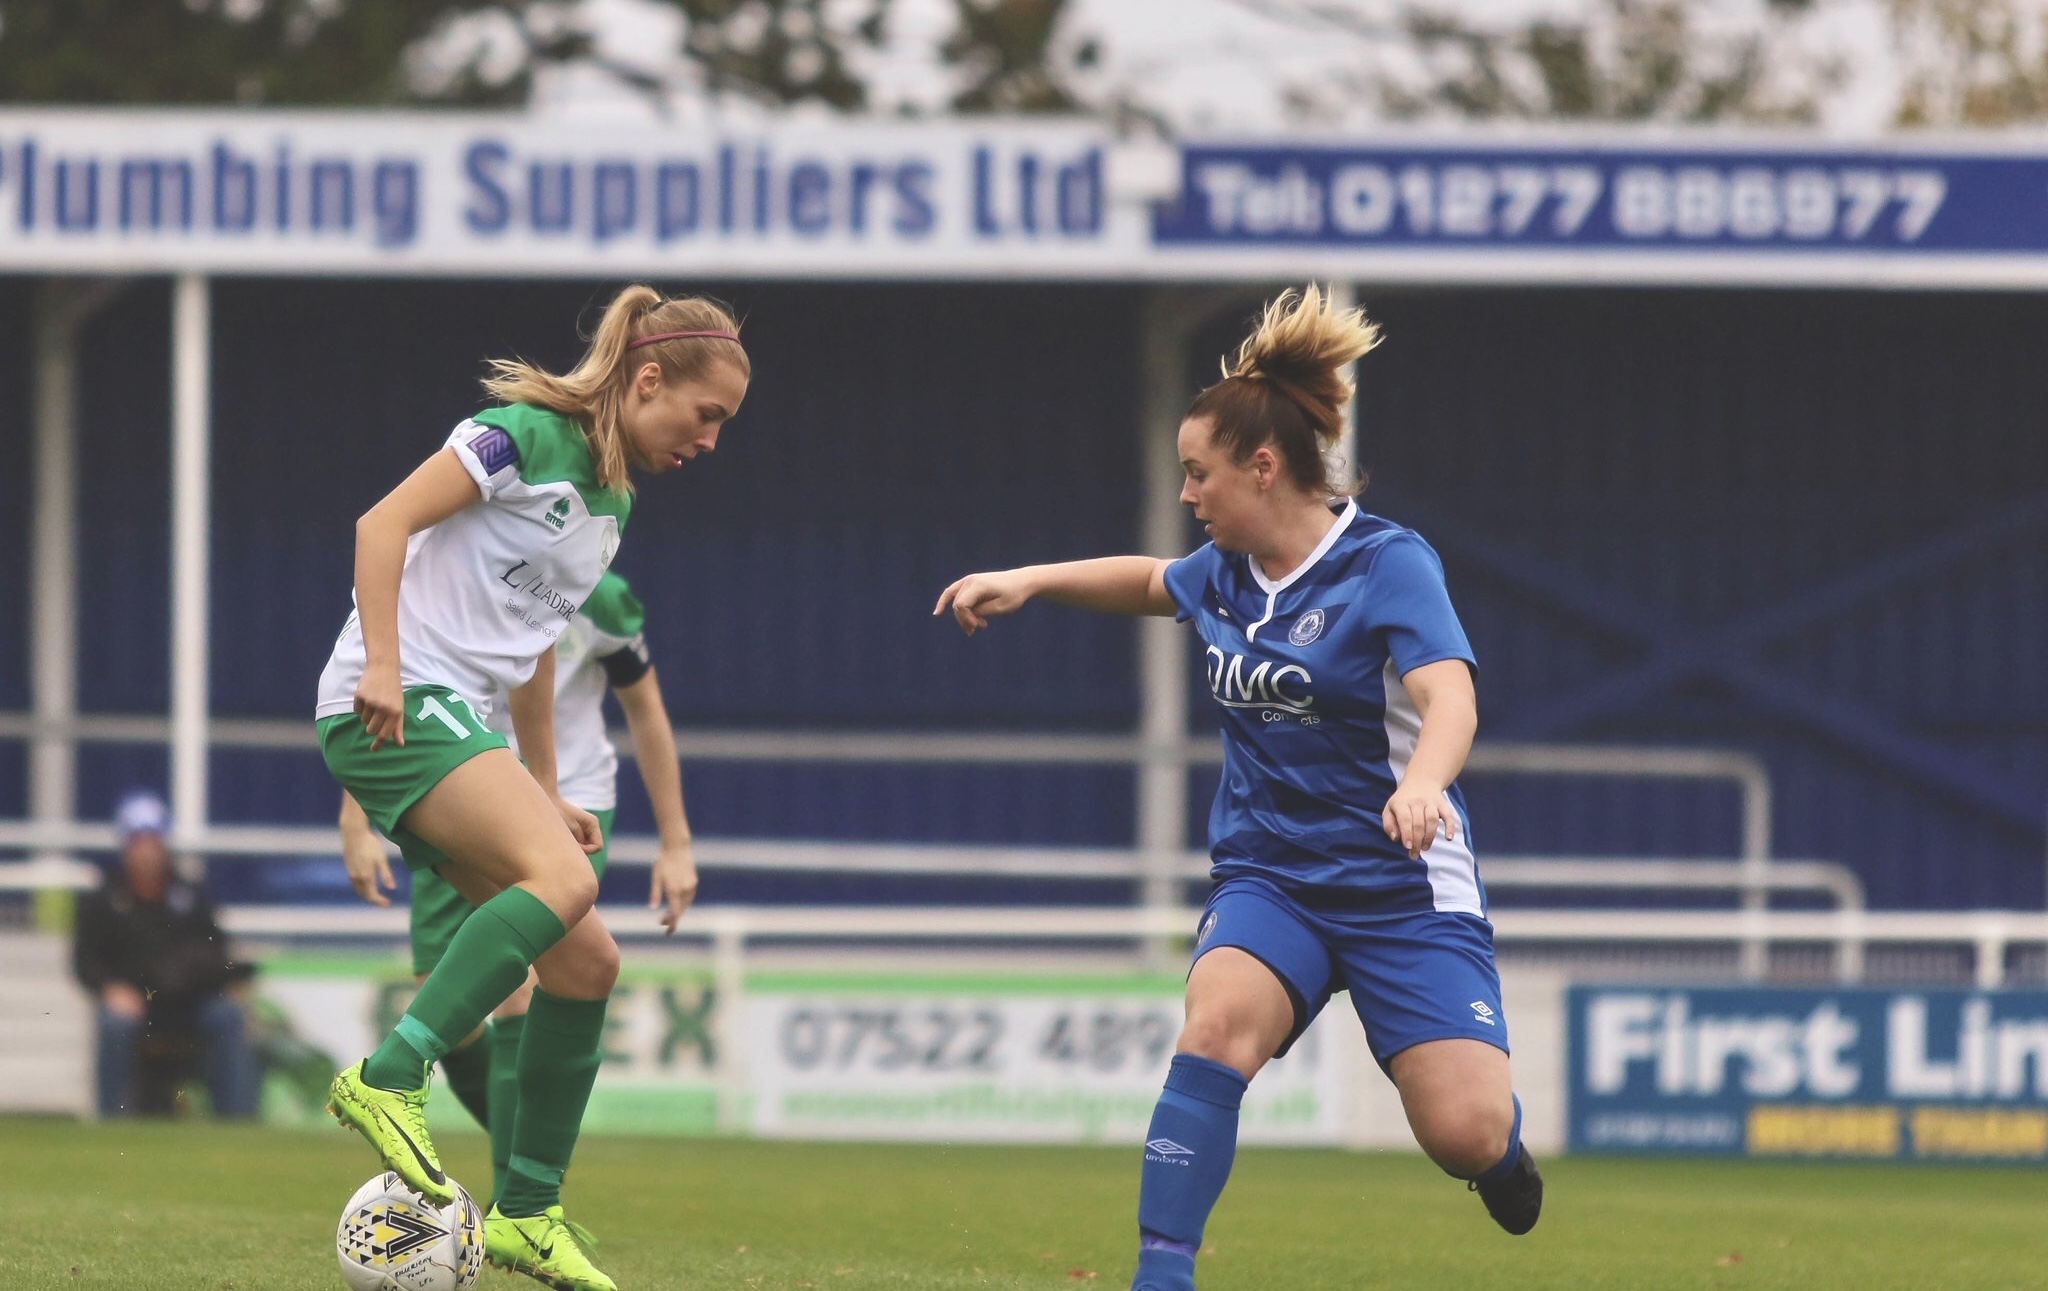 Tash Stephens at Billericay Ladies 0-2 Chichester City Ladies. Photo by Sheena Booker